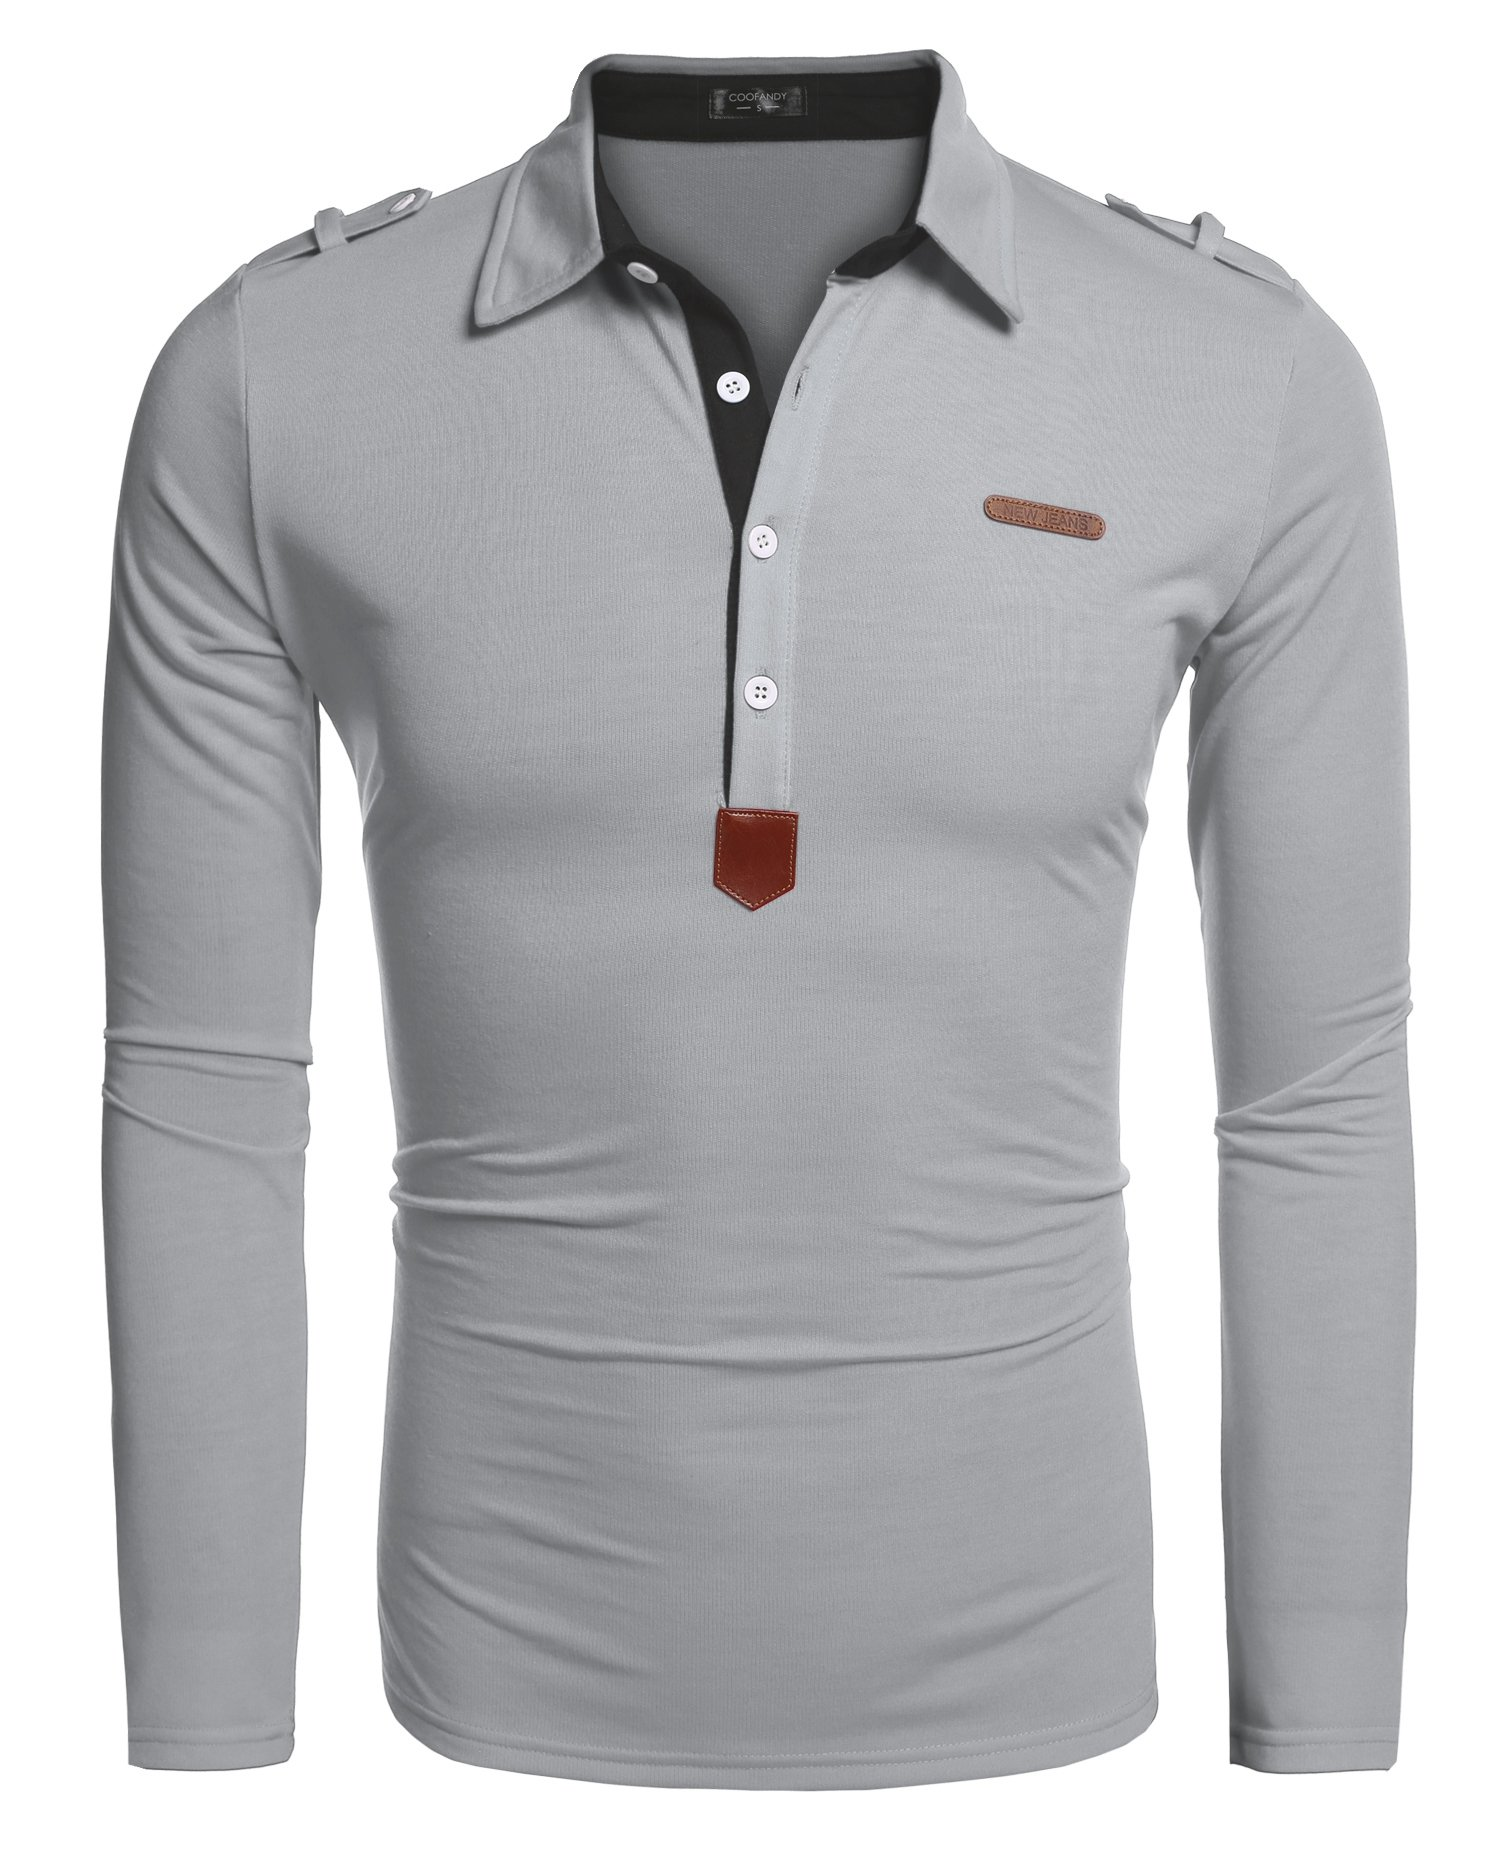 COOFANDY Men's Long Sleeve Polo Shirt Casual Slim Fit Classic Golf Polo T Shirts